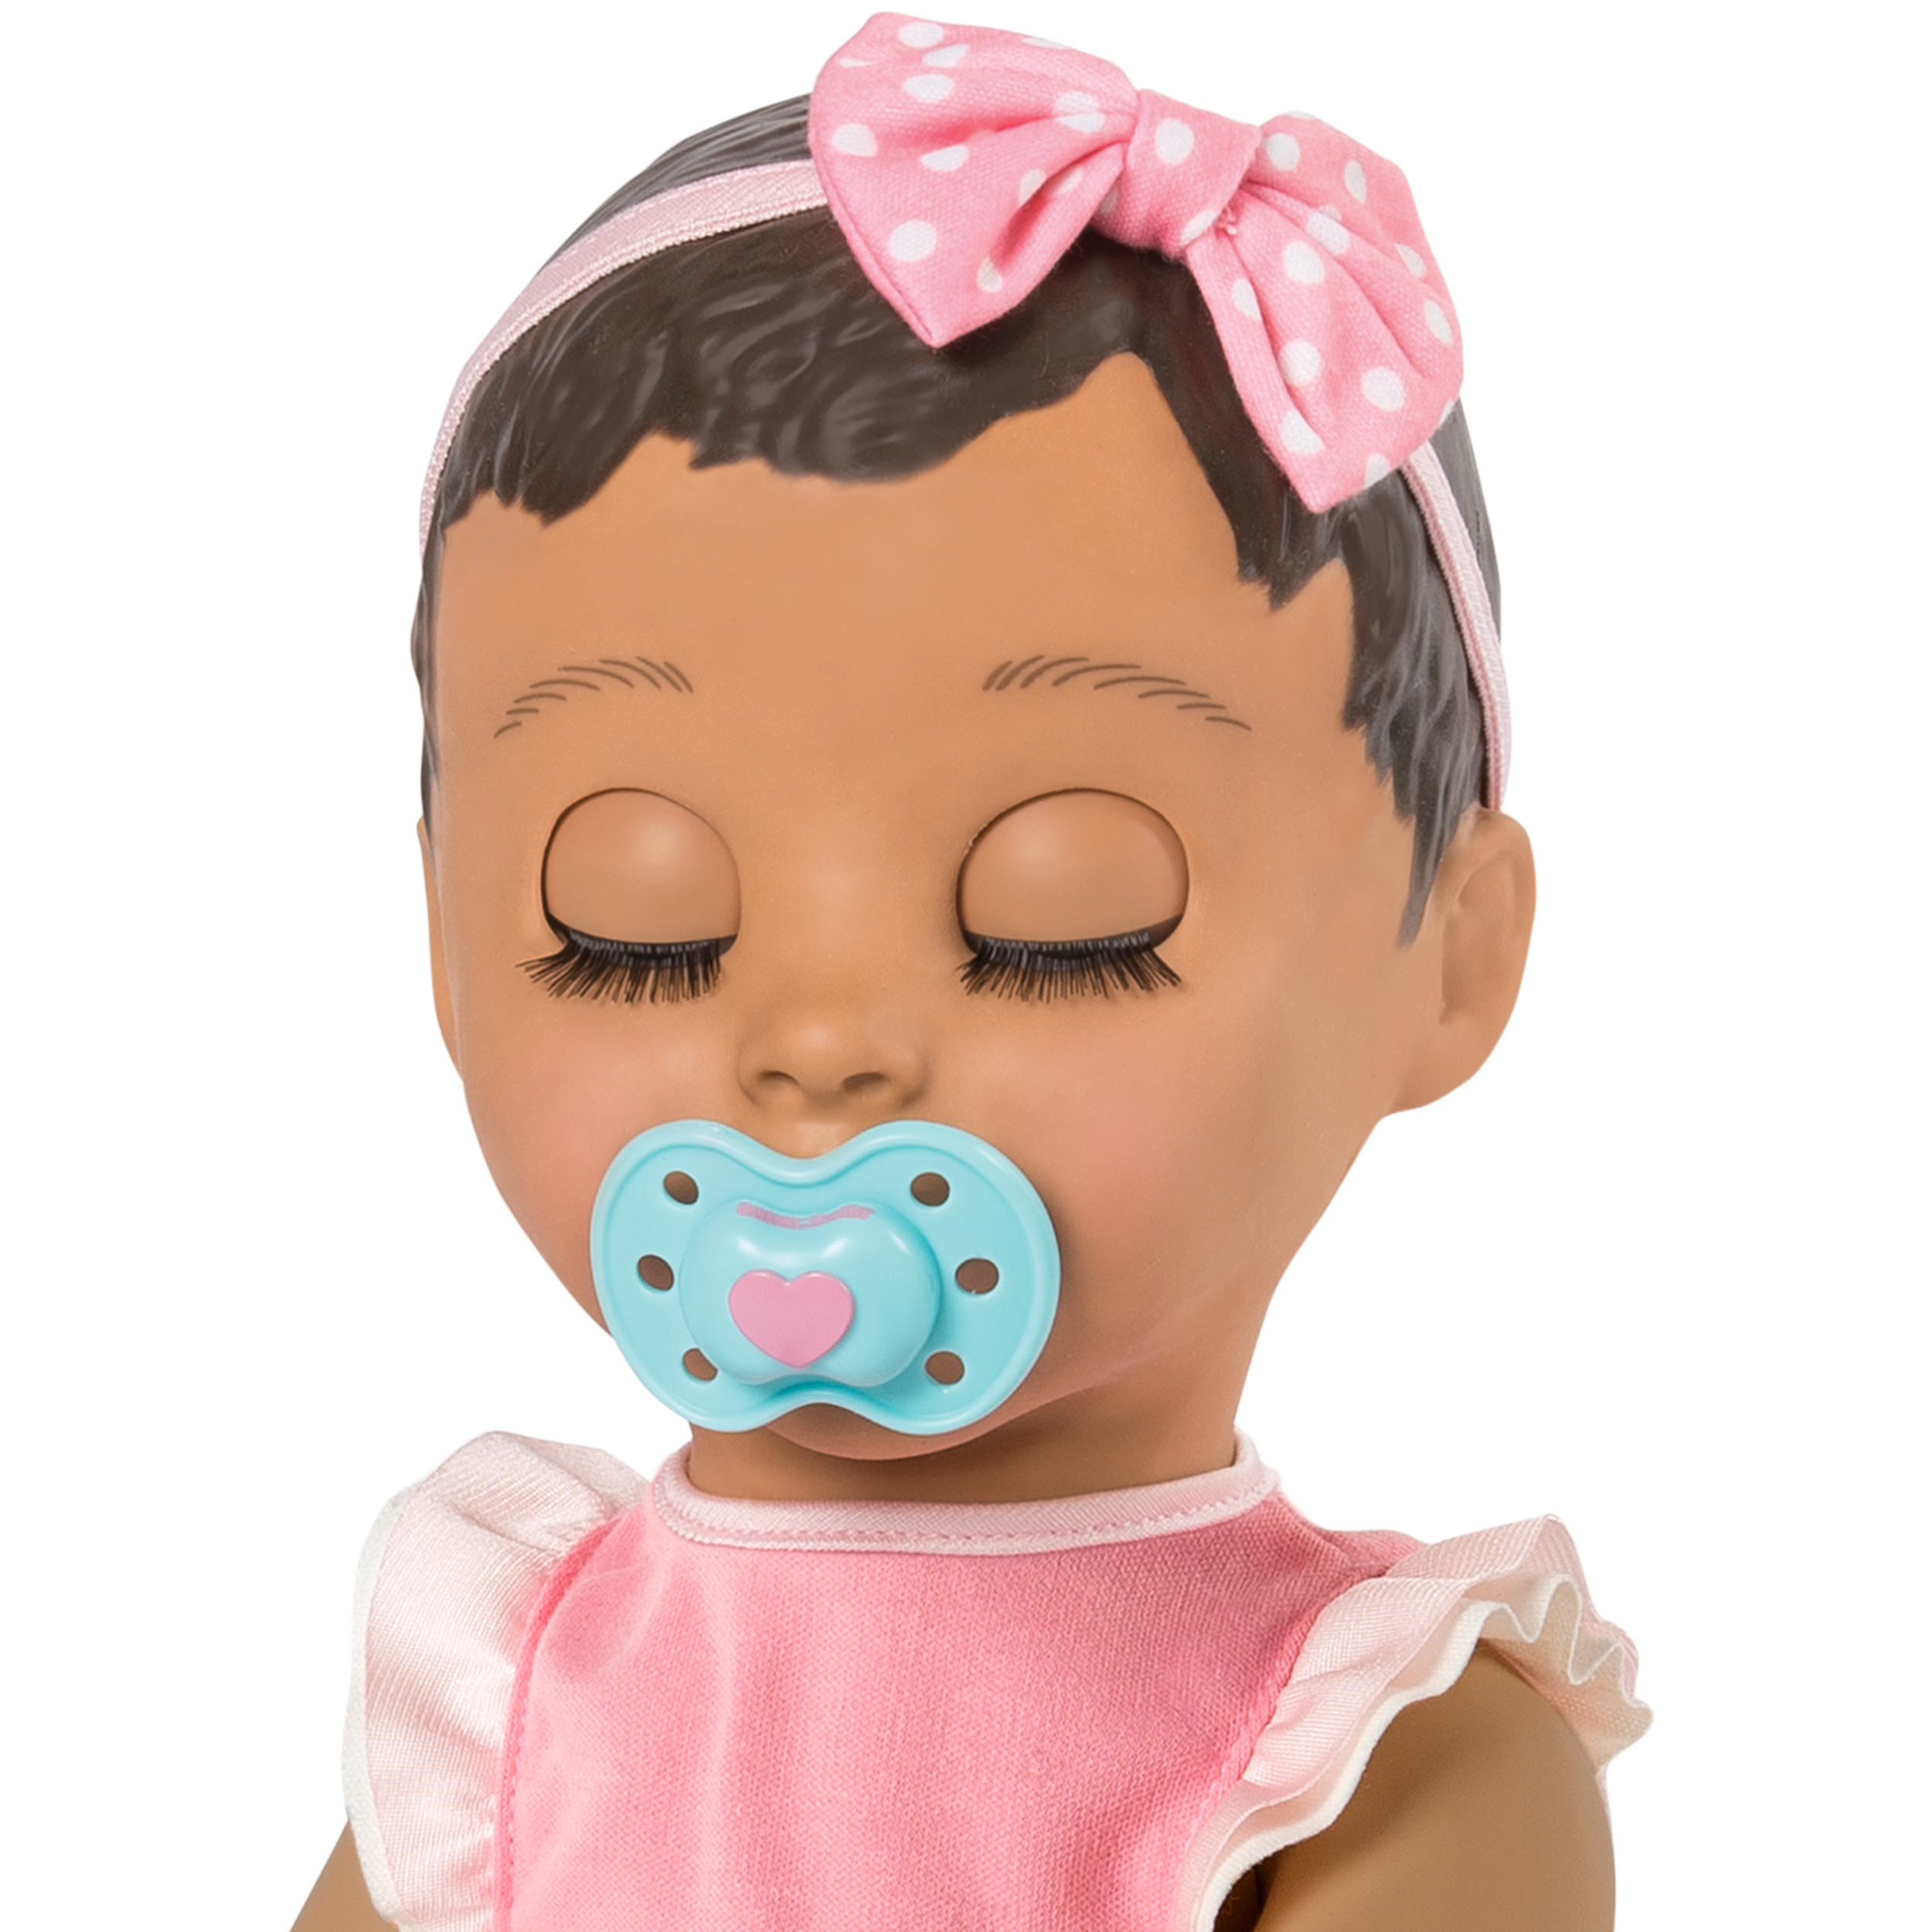 Luvabella Responsive Baby Girl Doll with Blonde Hair